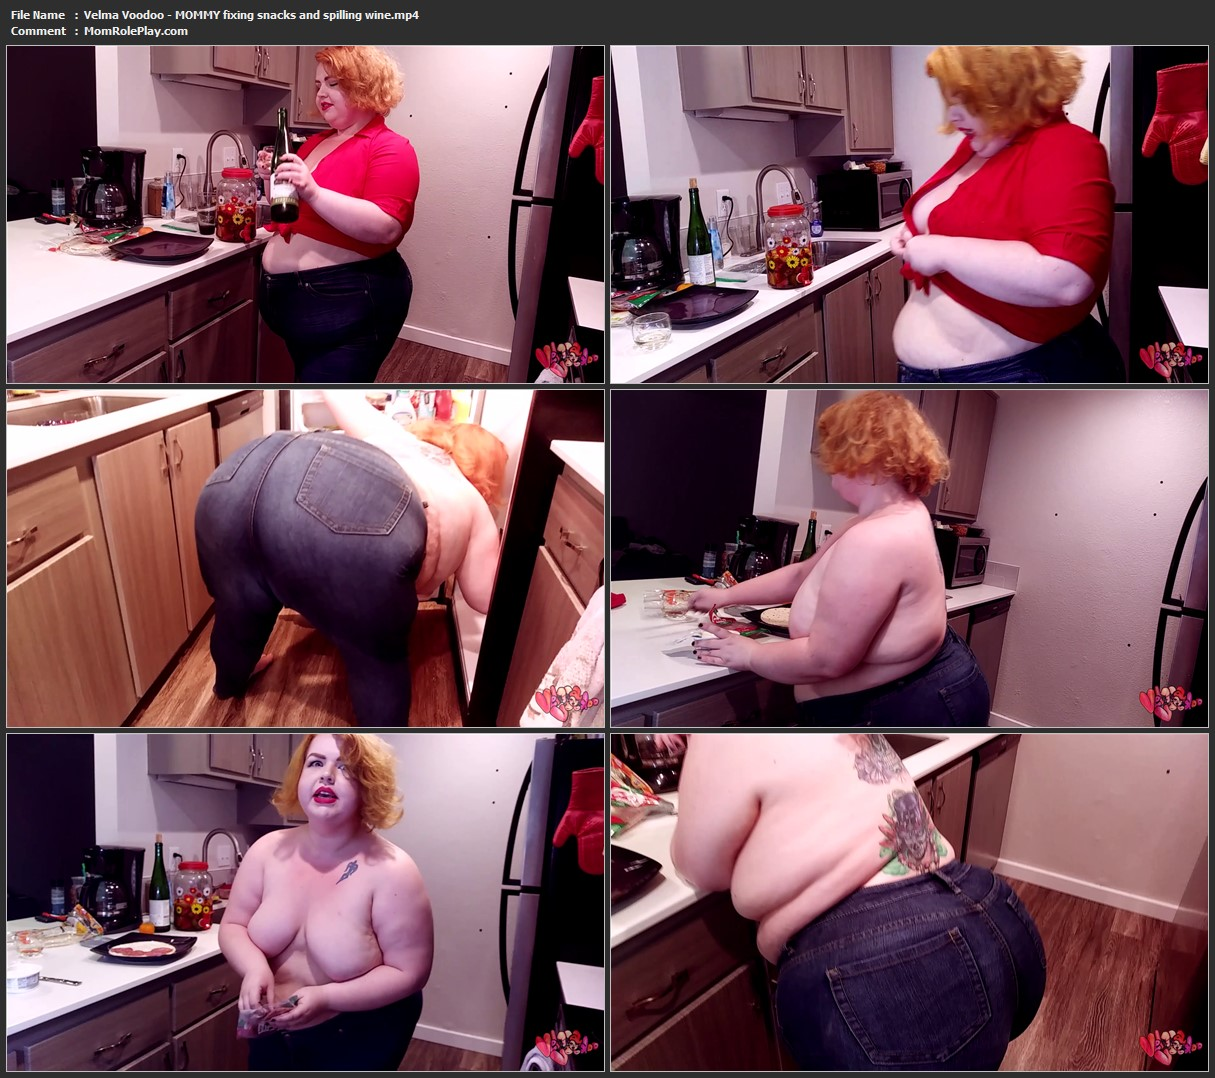 Velma Voodoo - MOMMY fixing snacks and spilling wine